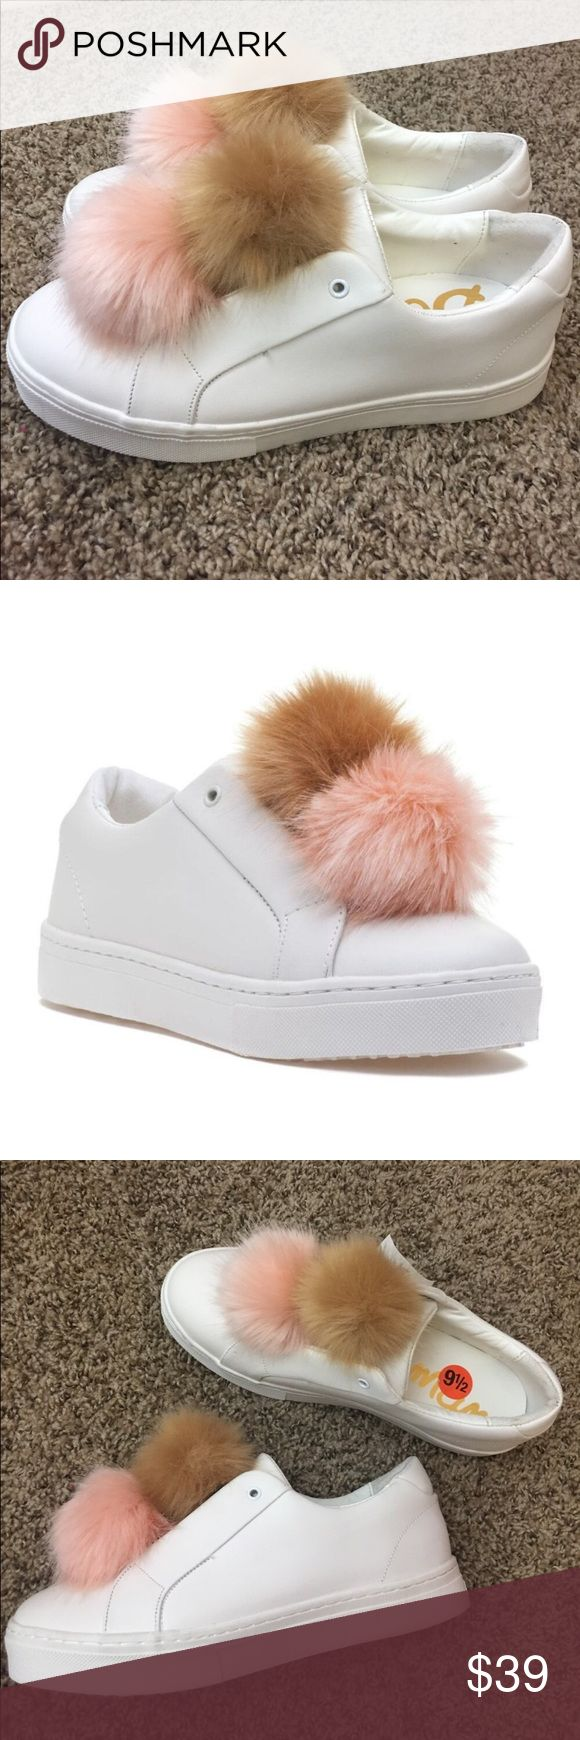 NEW Sam Edelman Leya Fur Pom Pom Sneaker Brand new!! Super cute and comfy!! Size… – Natalie Robino